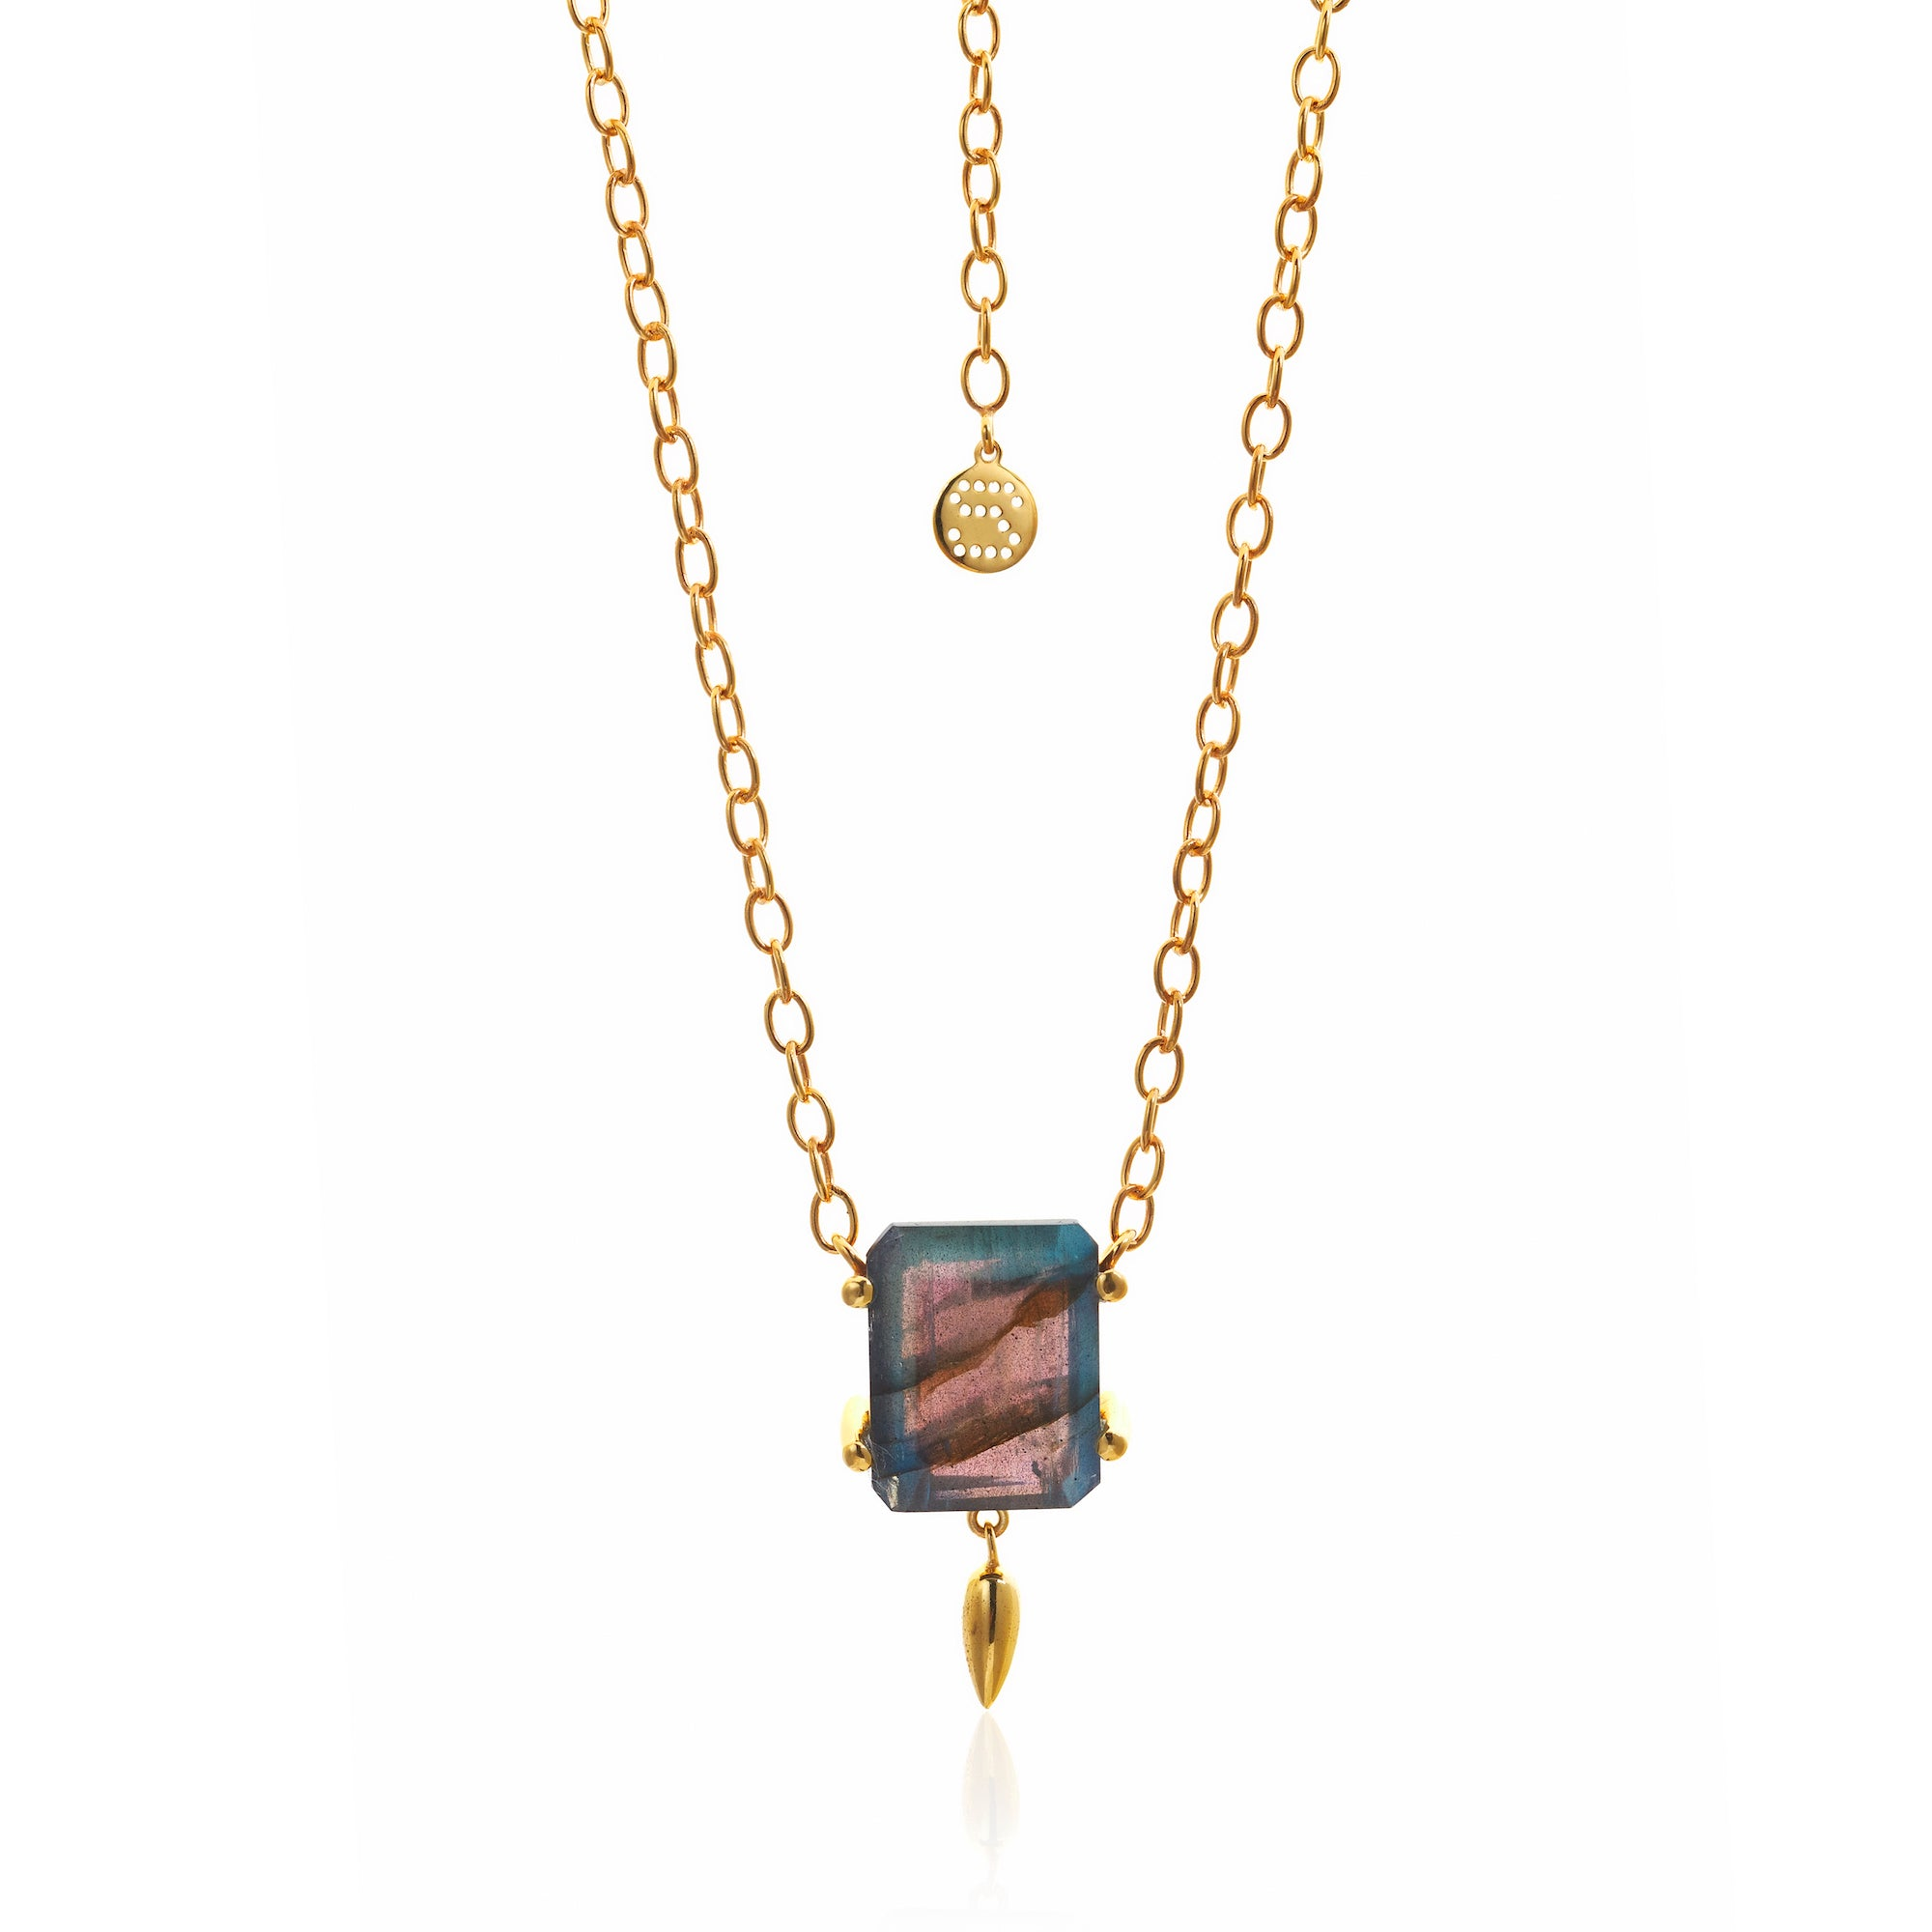 Silk&Steel Jewellery Prima Donna Labradorite and Gold Necklace from La Dolce Vita Collection